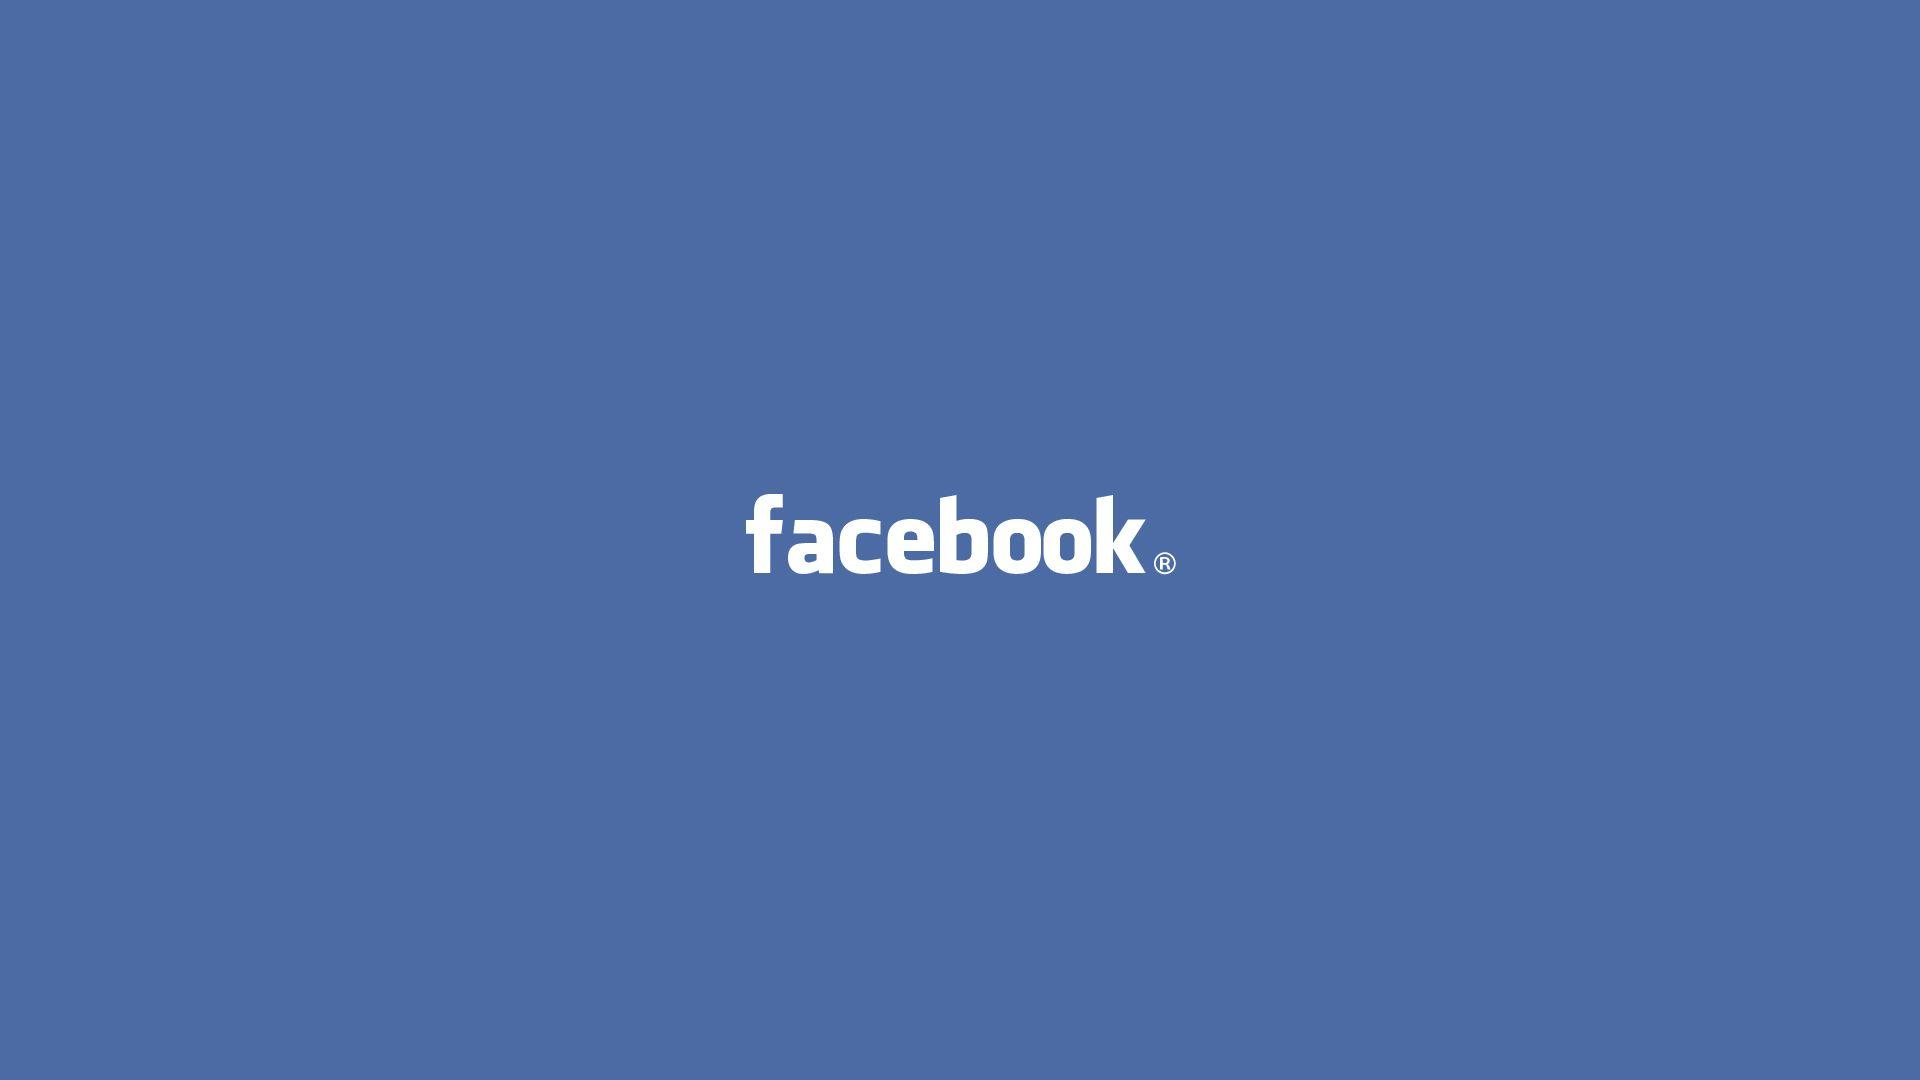 Facebook Wallpapers HD Pictures